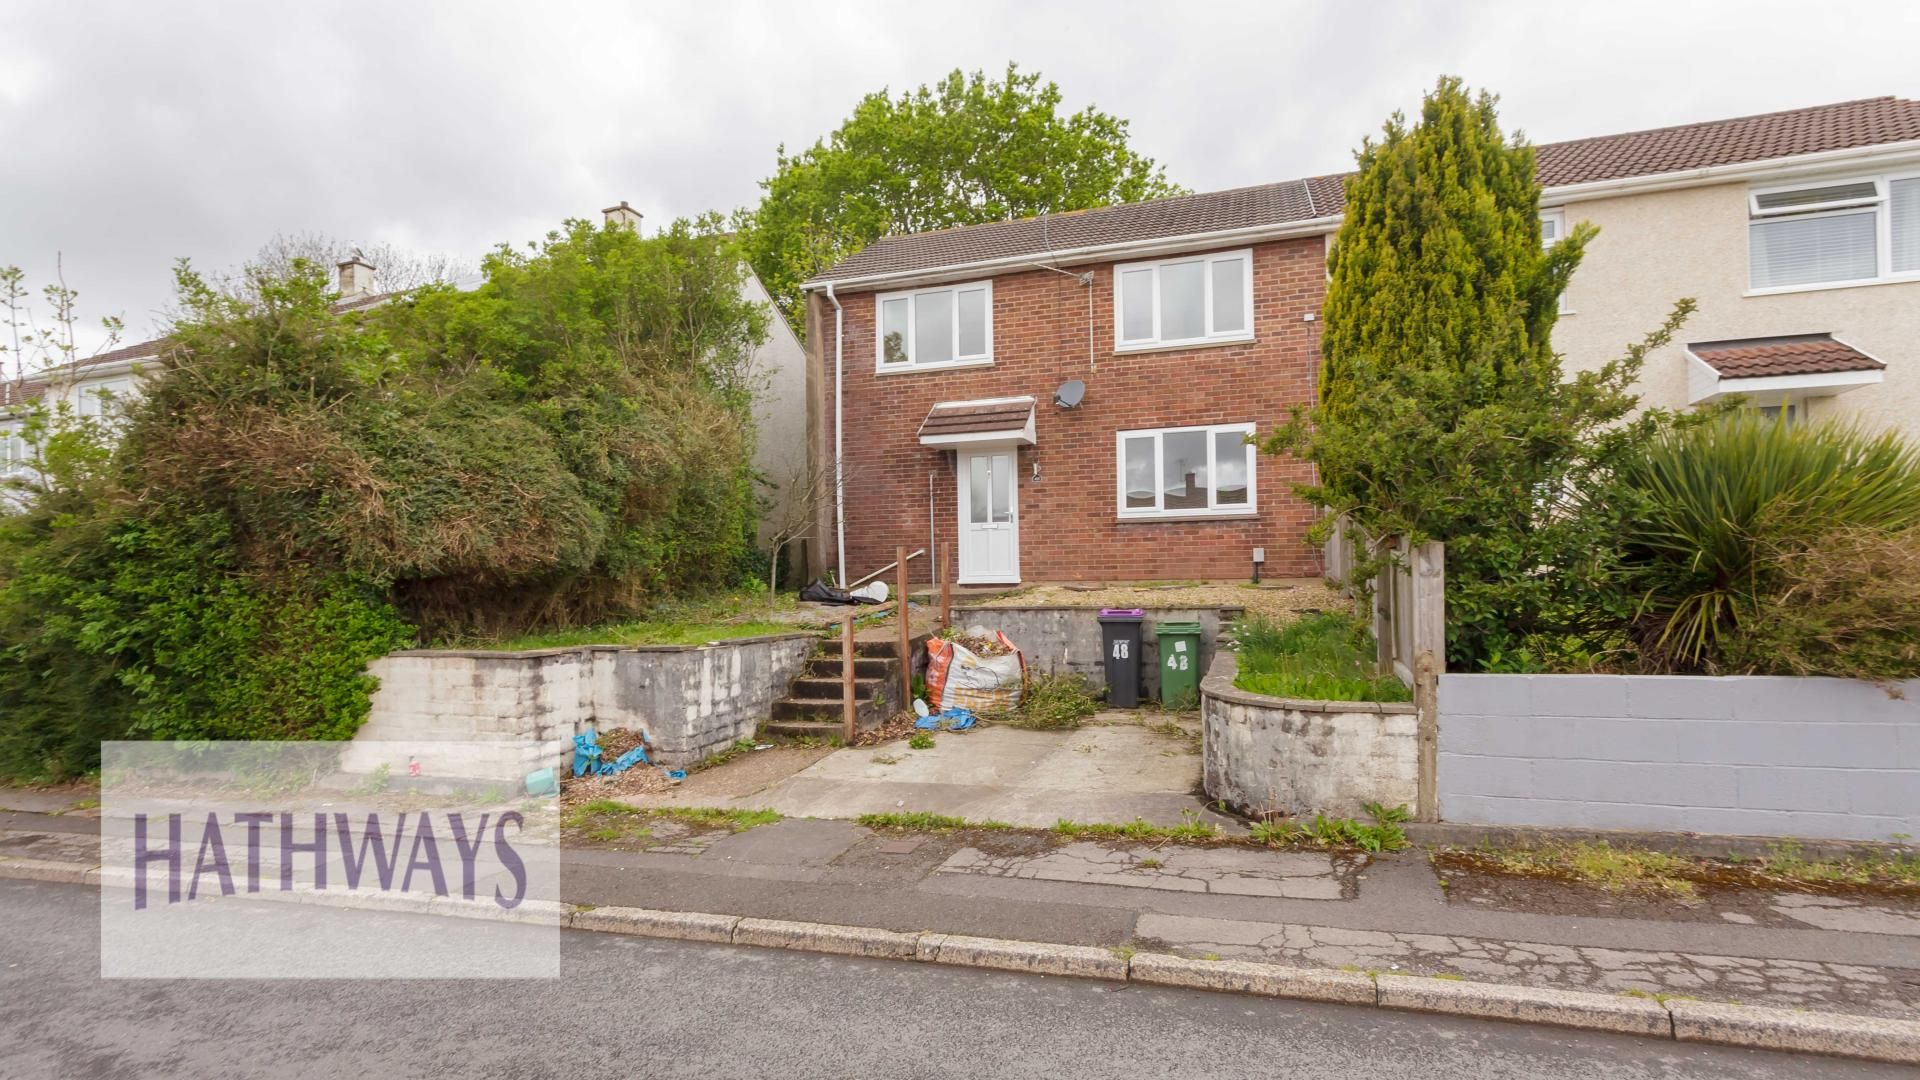 3 bed house for sale in Greenwood Avenue, NP44